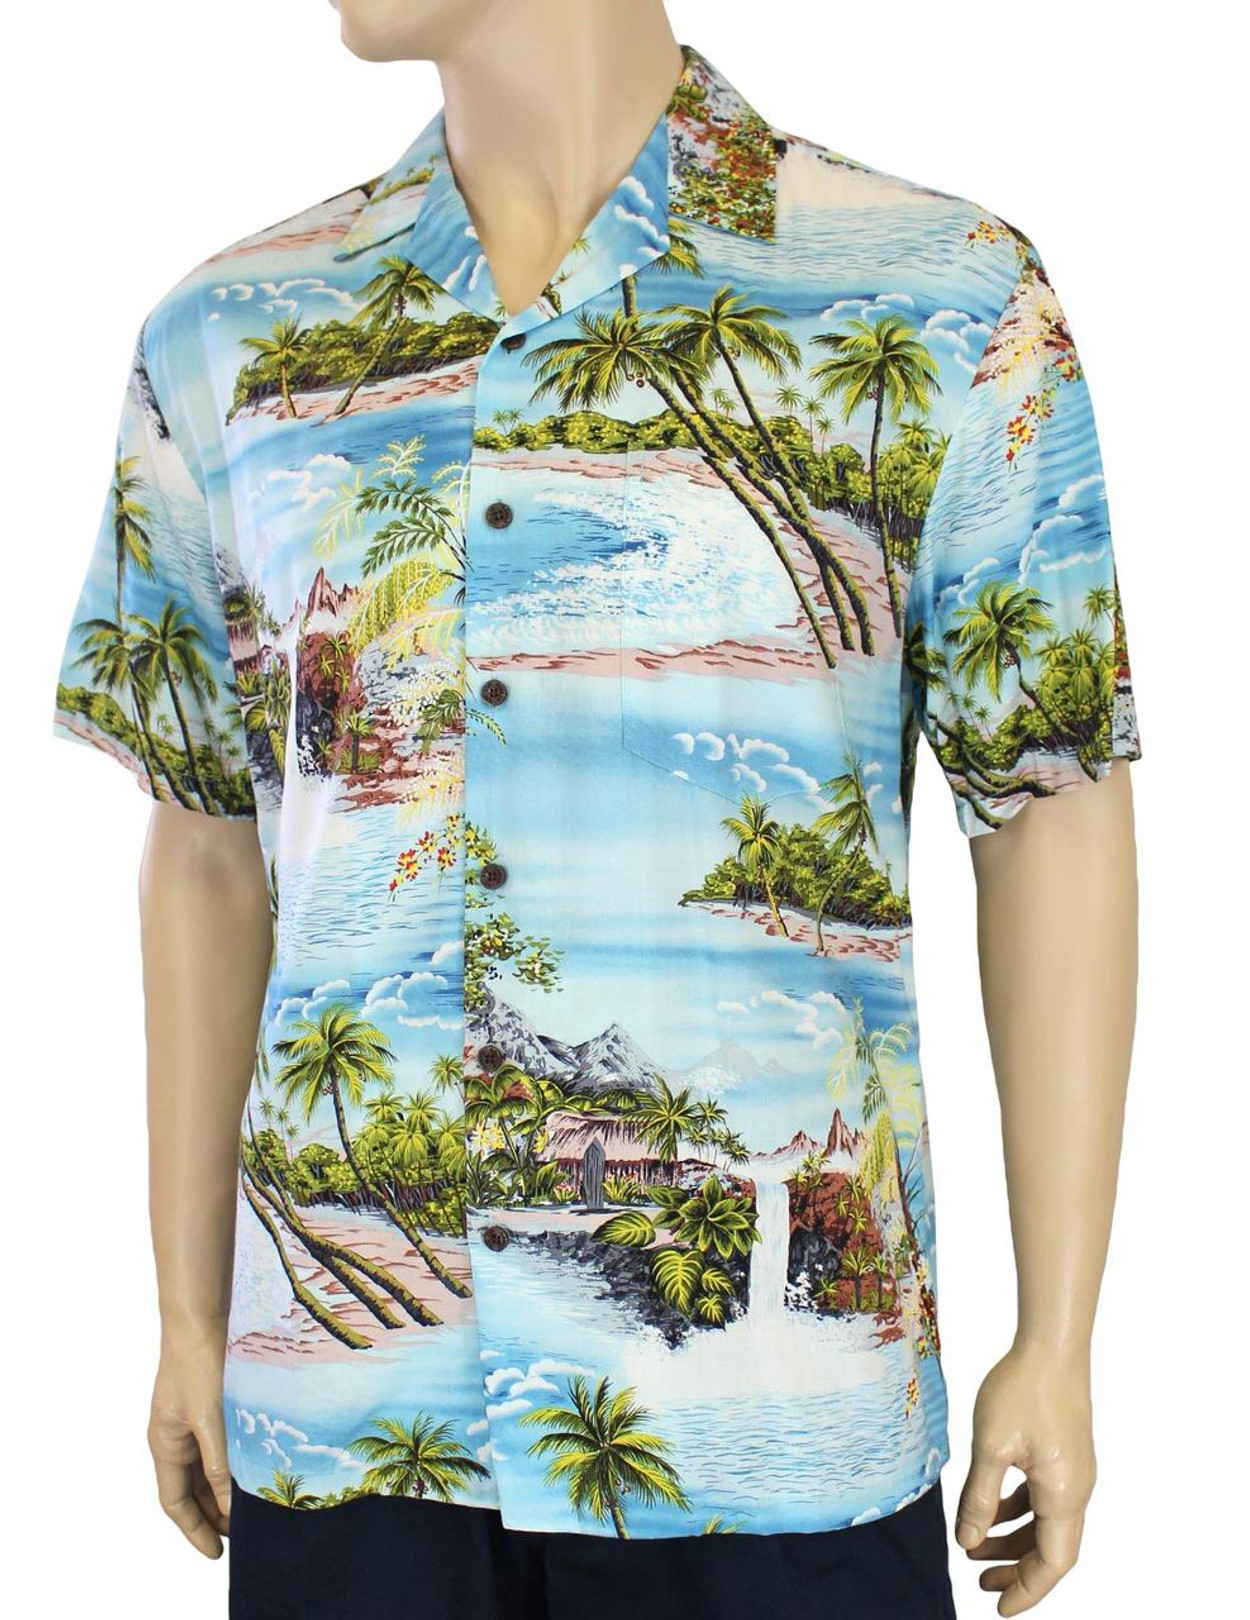 373832fb Island Paradise Men's Tropical Rayon Shirt 100% Rayon Fabric Open Pointed  Folded Collar Genuine Coconut